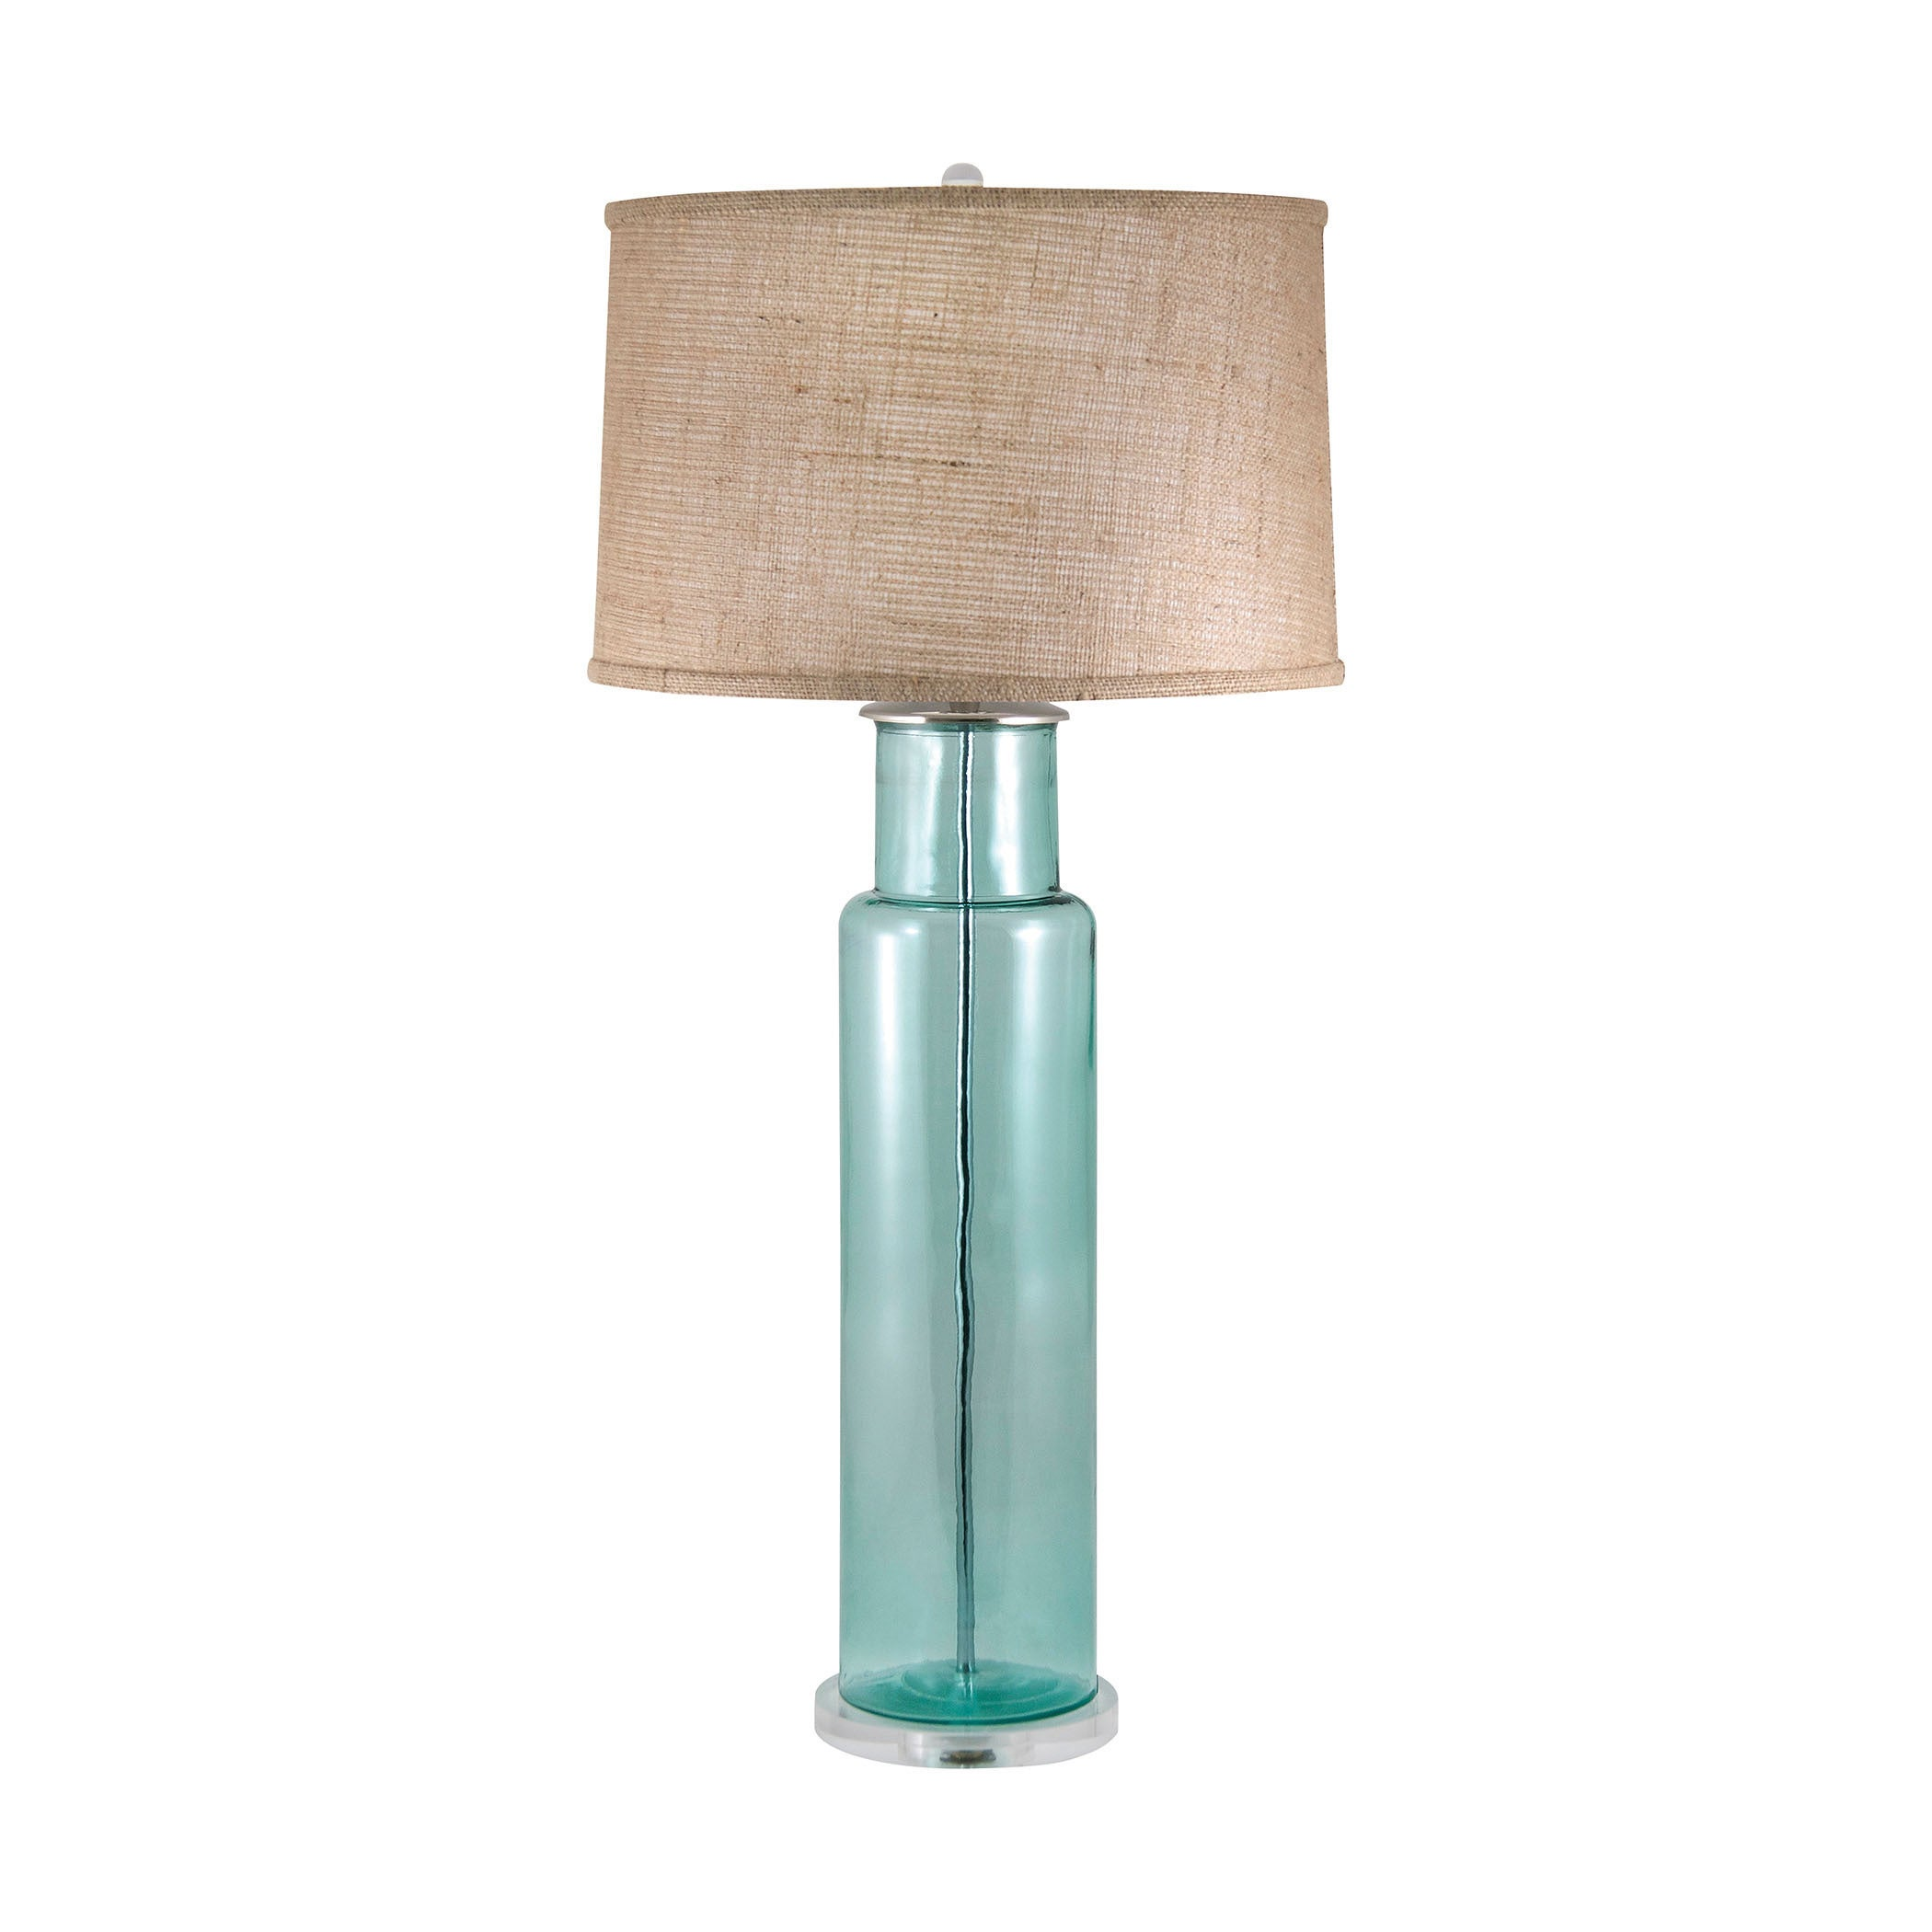 Blue recycled glass cylinder table lamp free shipping today blue recycled glass cylinder table lamp free shipping today overstock 18189173 mozeypictures Choice Image